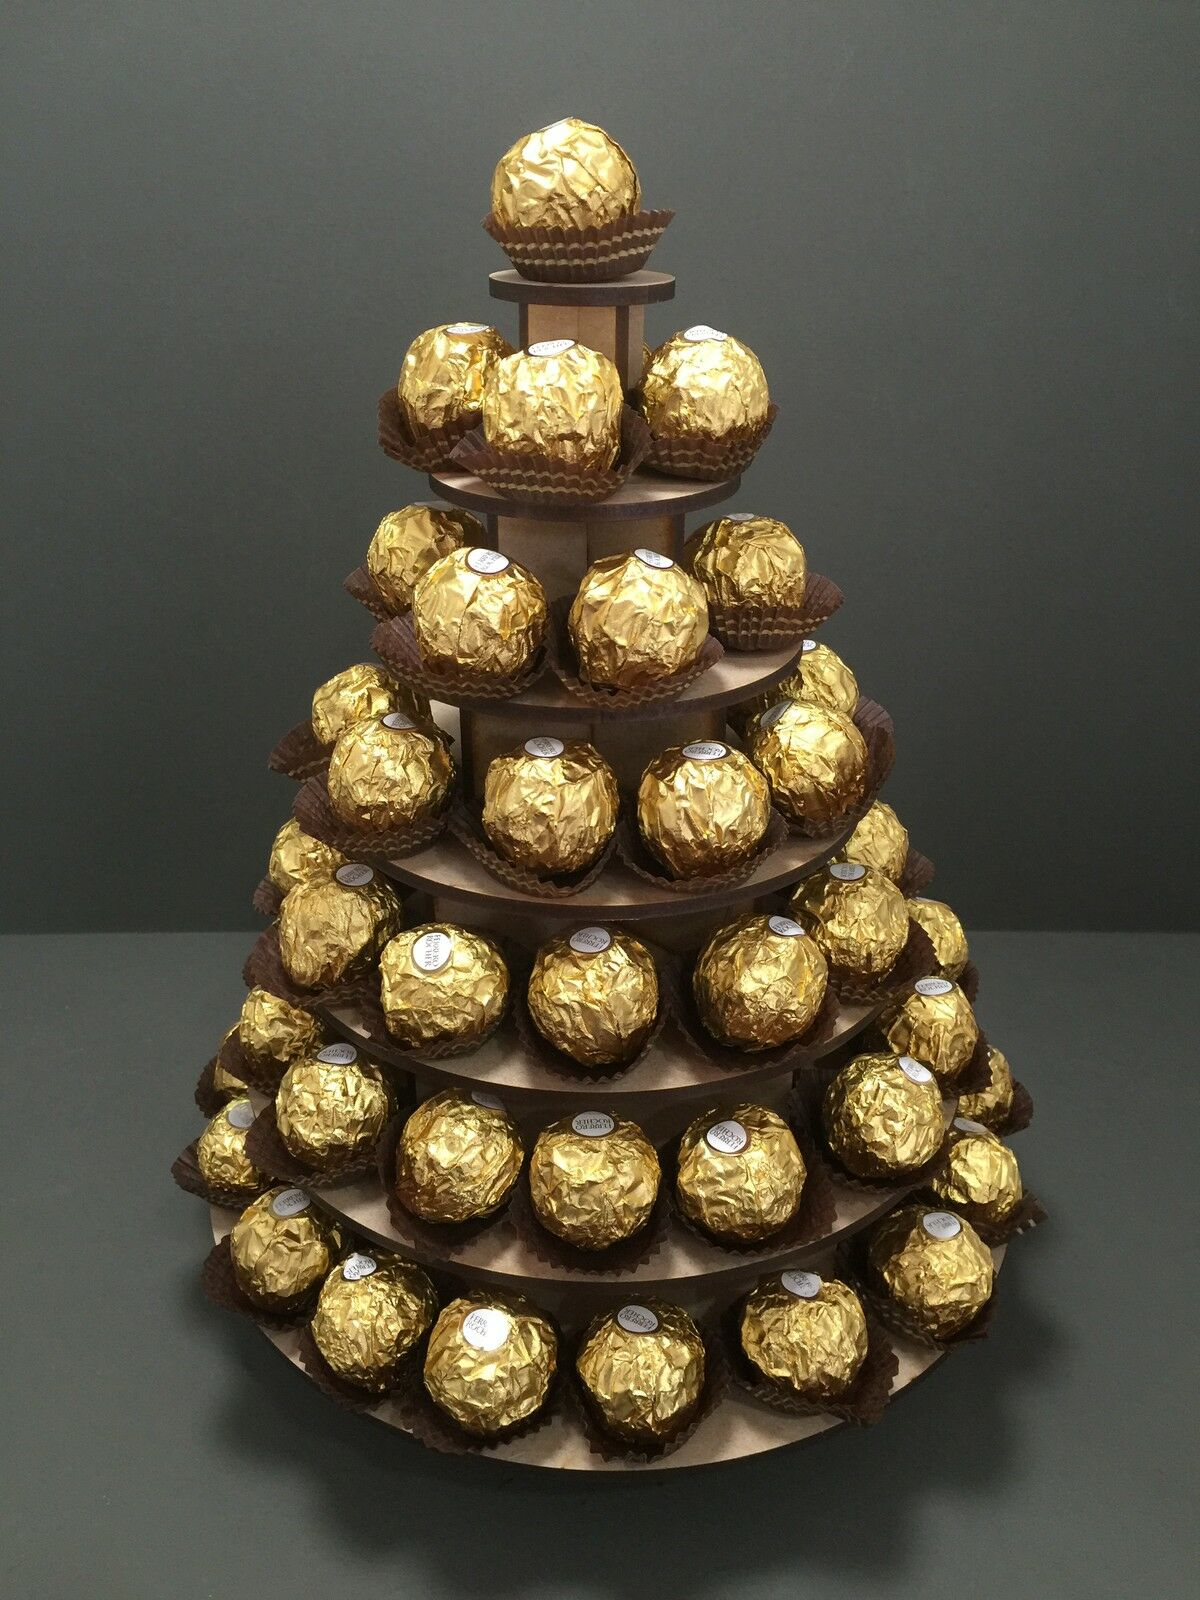 Y25 85x Chocolate 7 TIER Ferrero Rocher Rocher Rocher Wedding Table Pyramid Display Stand 8ca27e